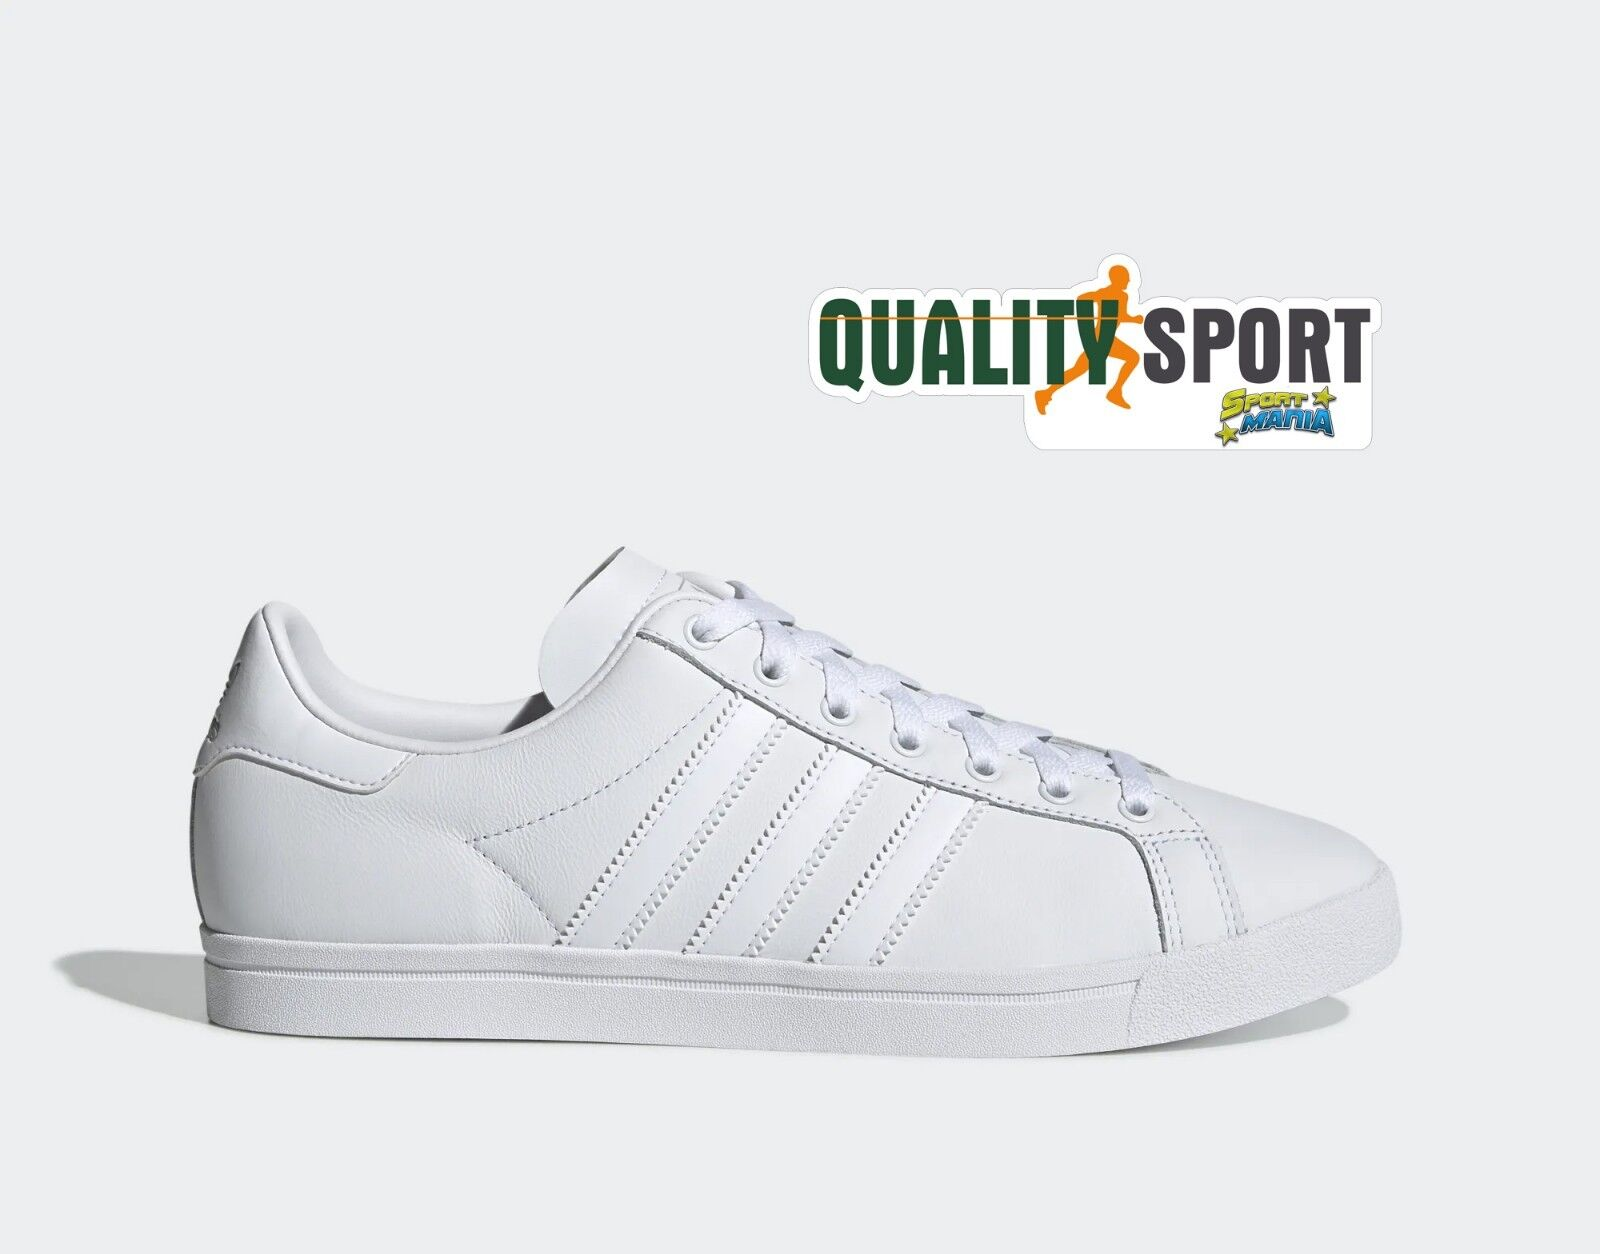 Adidas Coast Star Bianco shoes shoes men Sportive Sneakers EE8903 2019